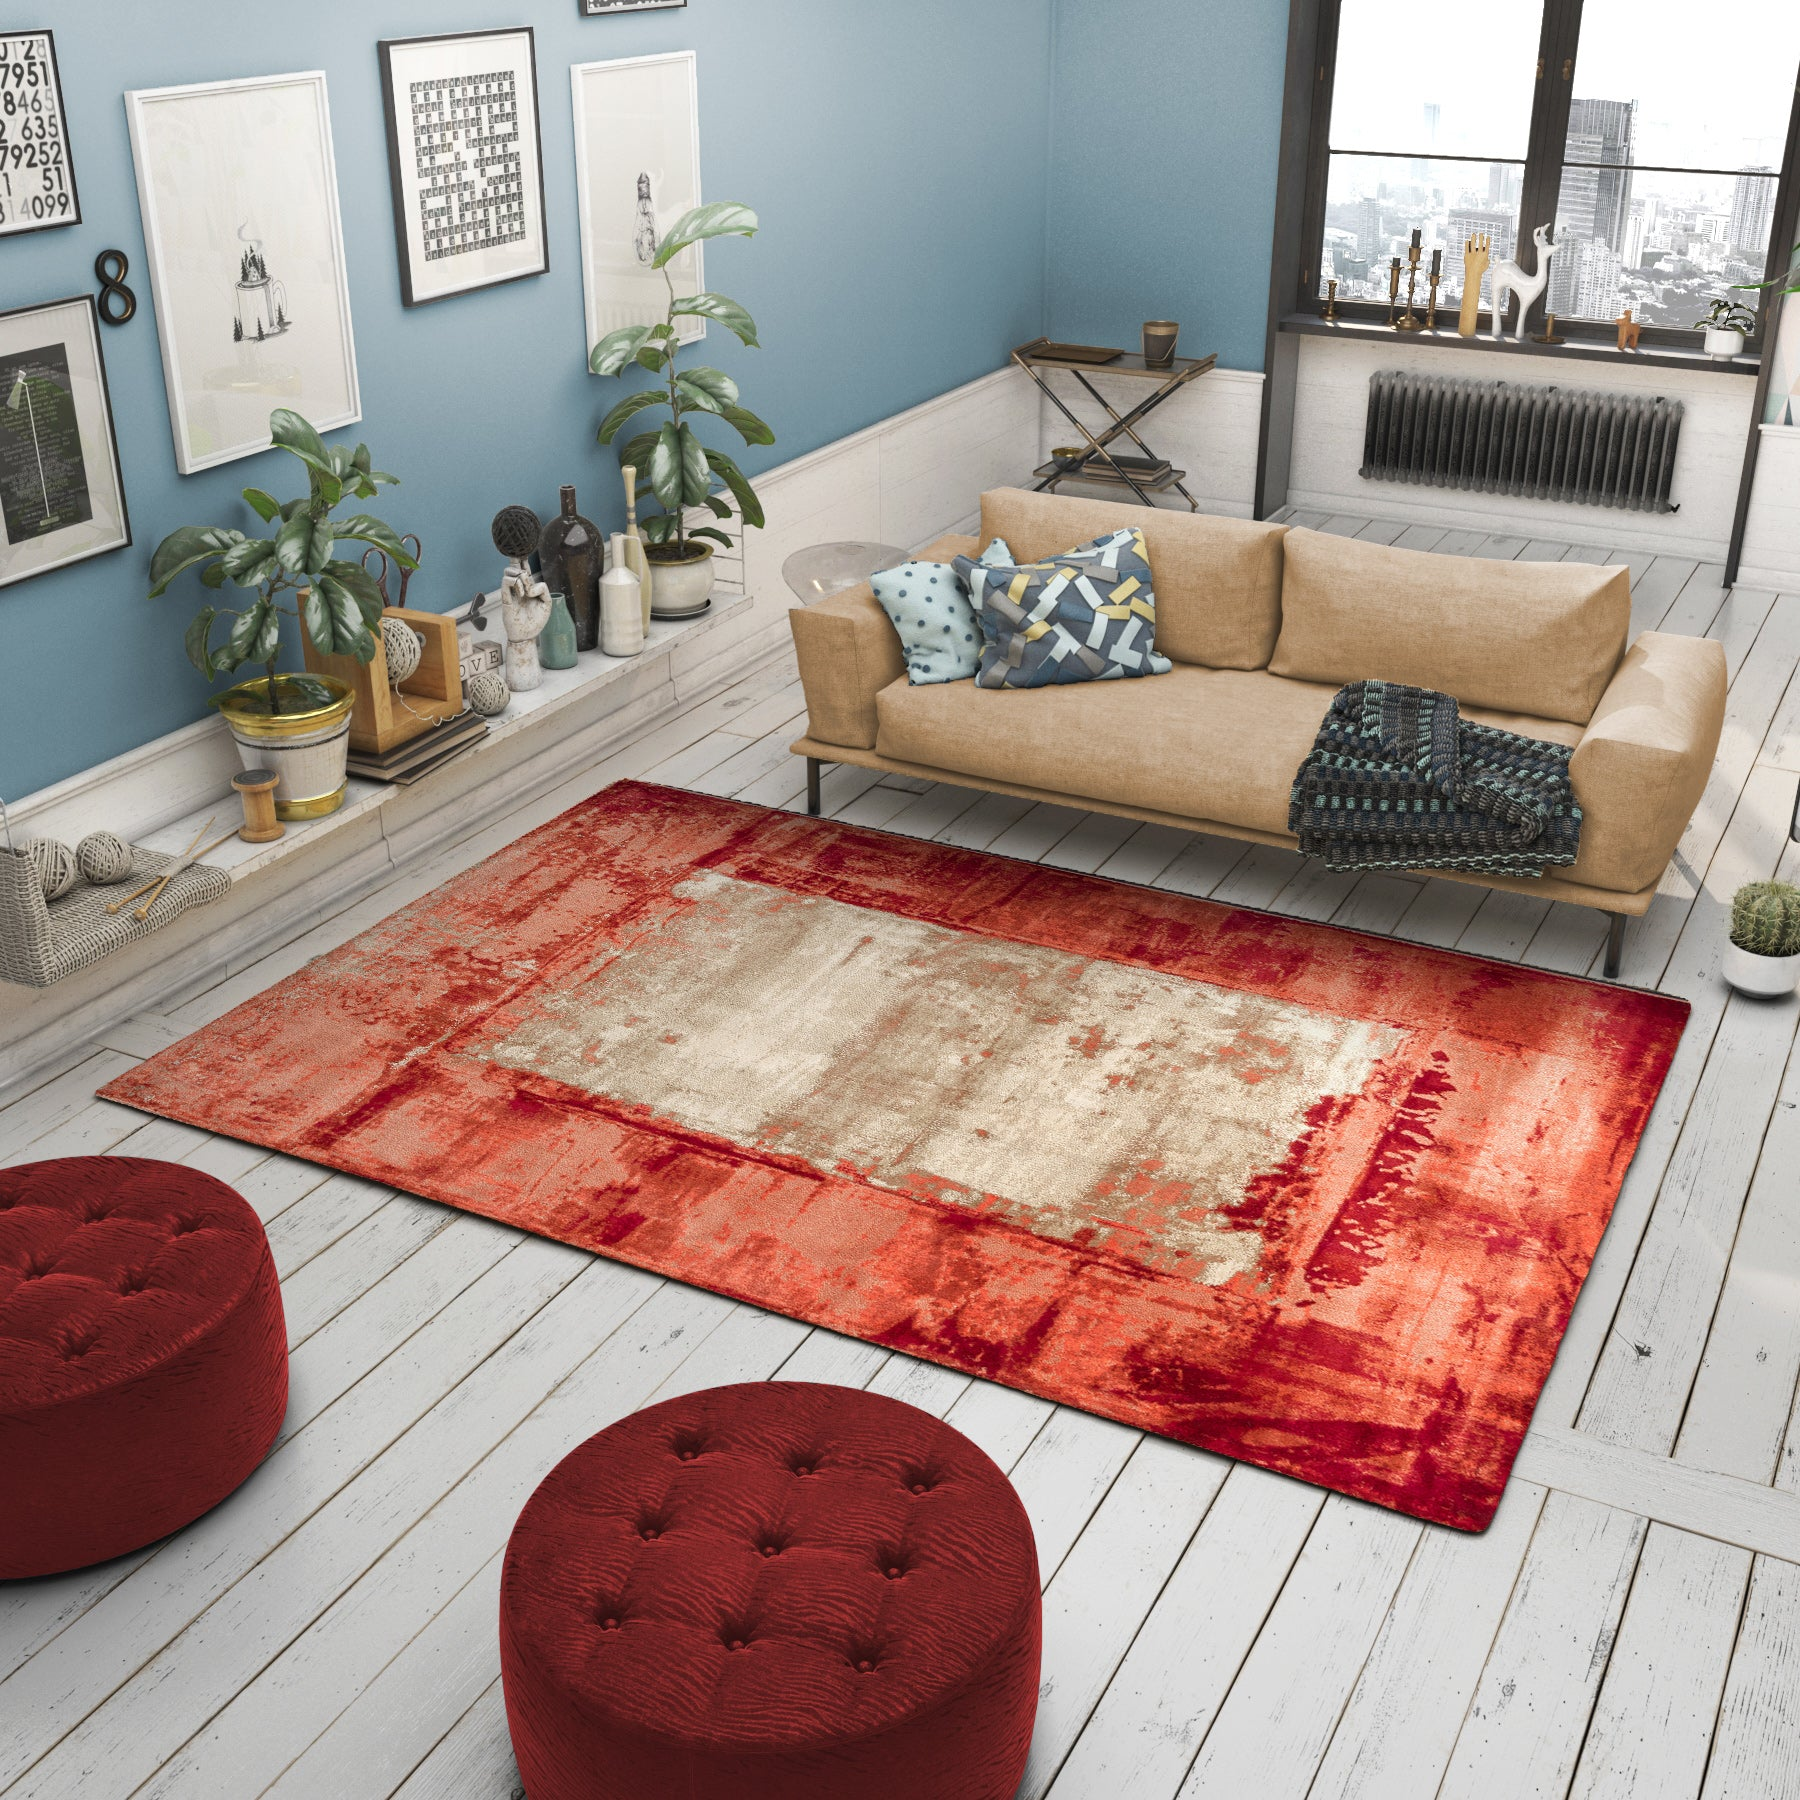 Effortless 'Musts' to Preserving Your Synthetic Rug